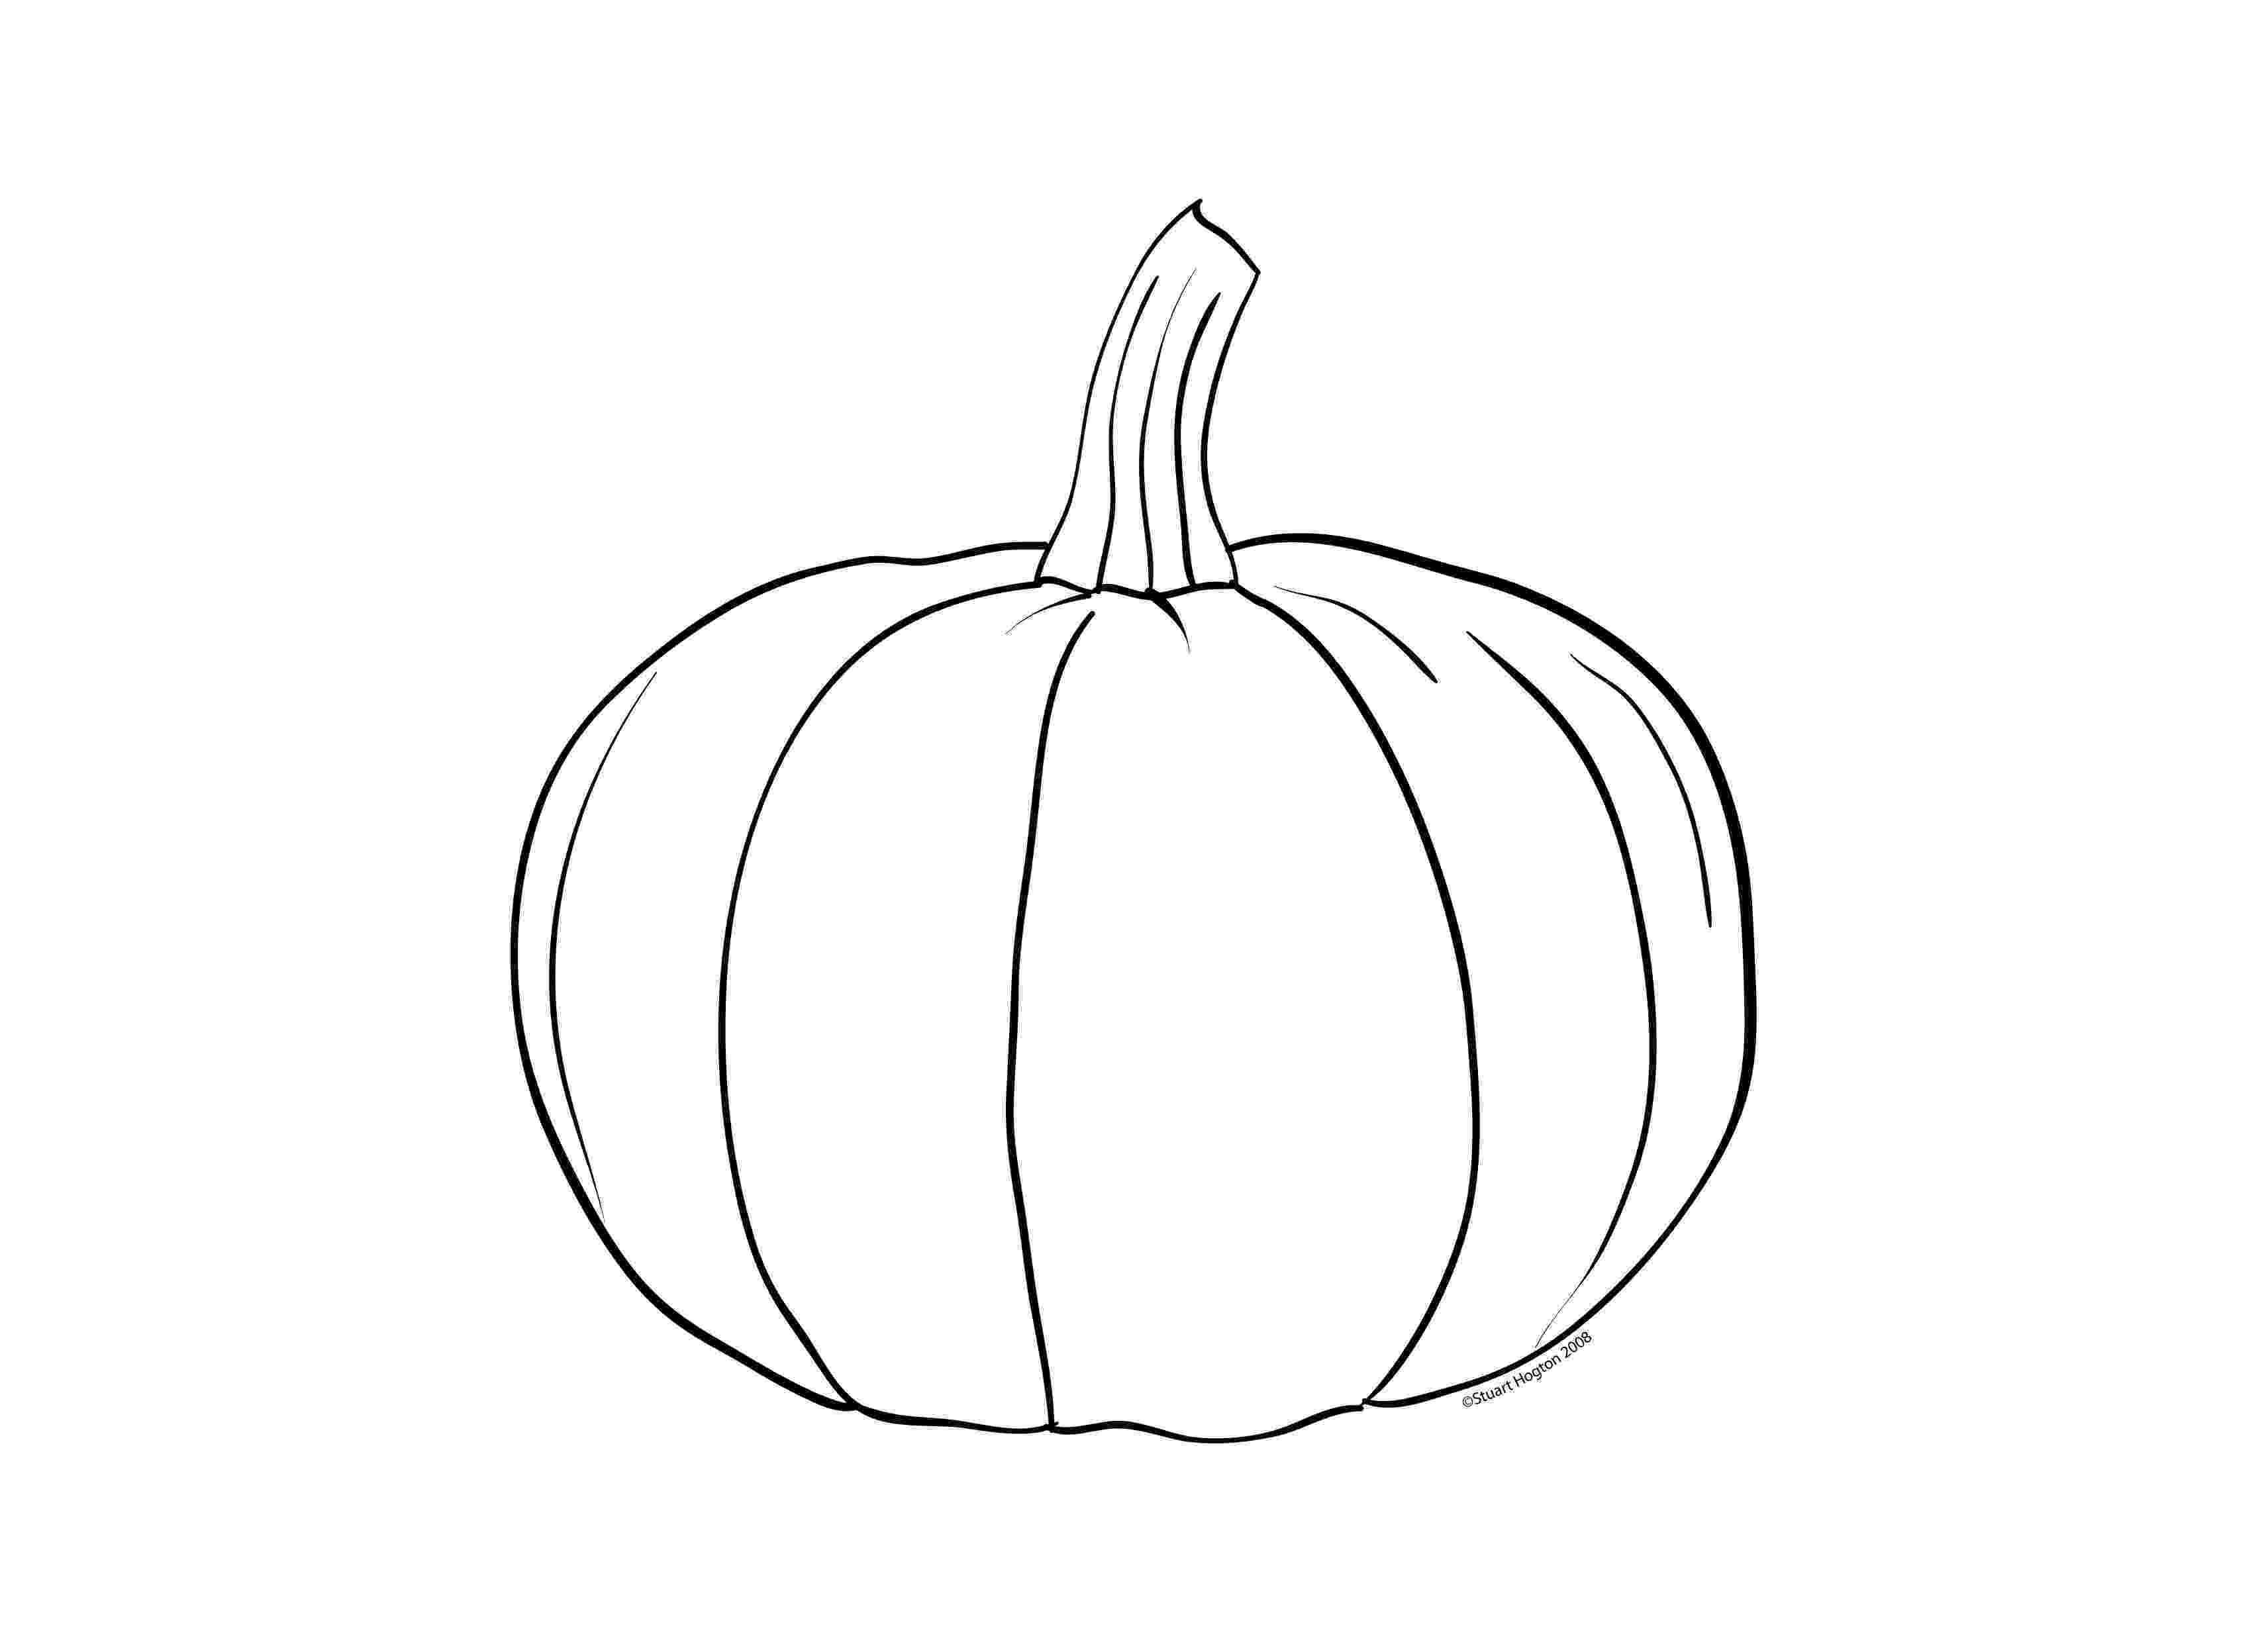 images of pumpkins to color free printable pumpkin coloring pages for kids cool2bkids pumpkins to of color images